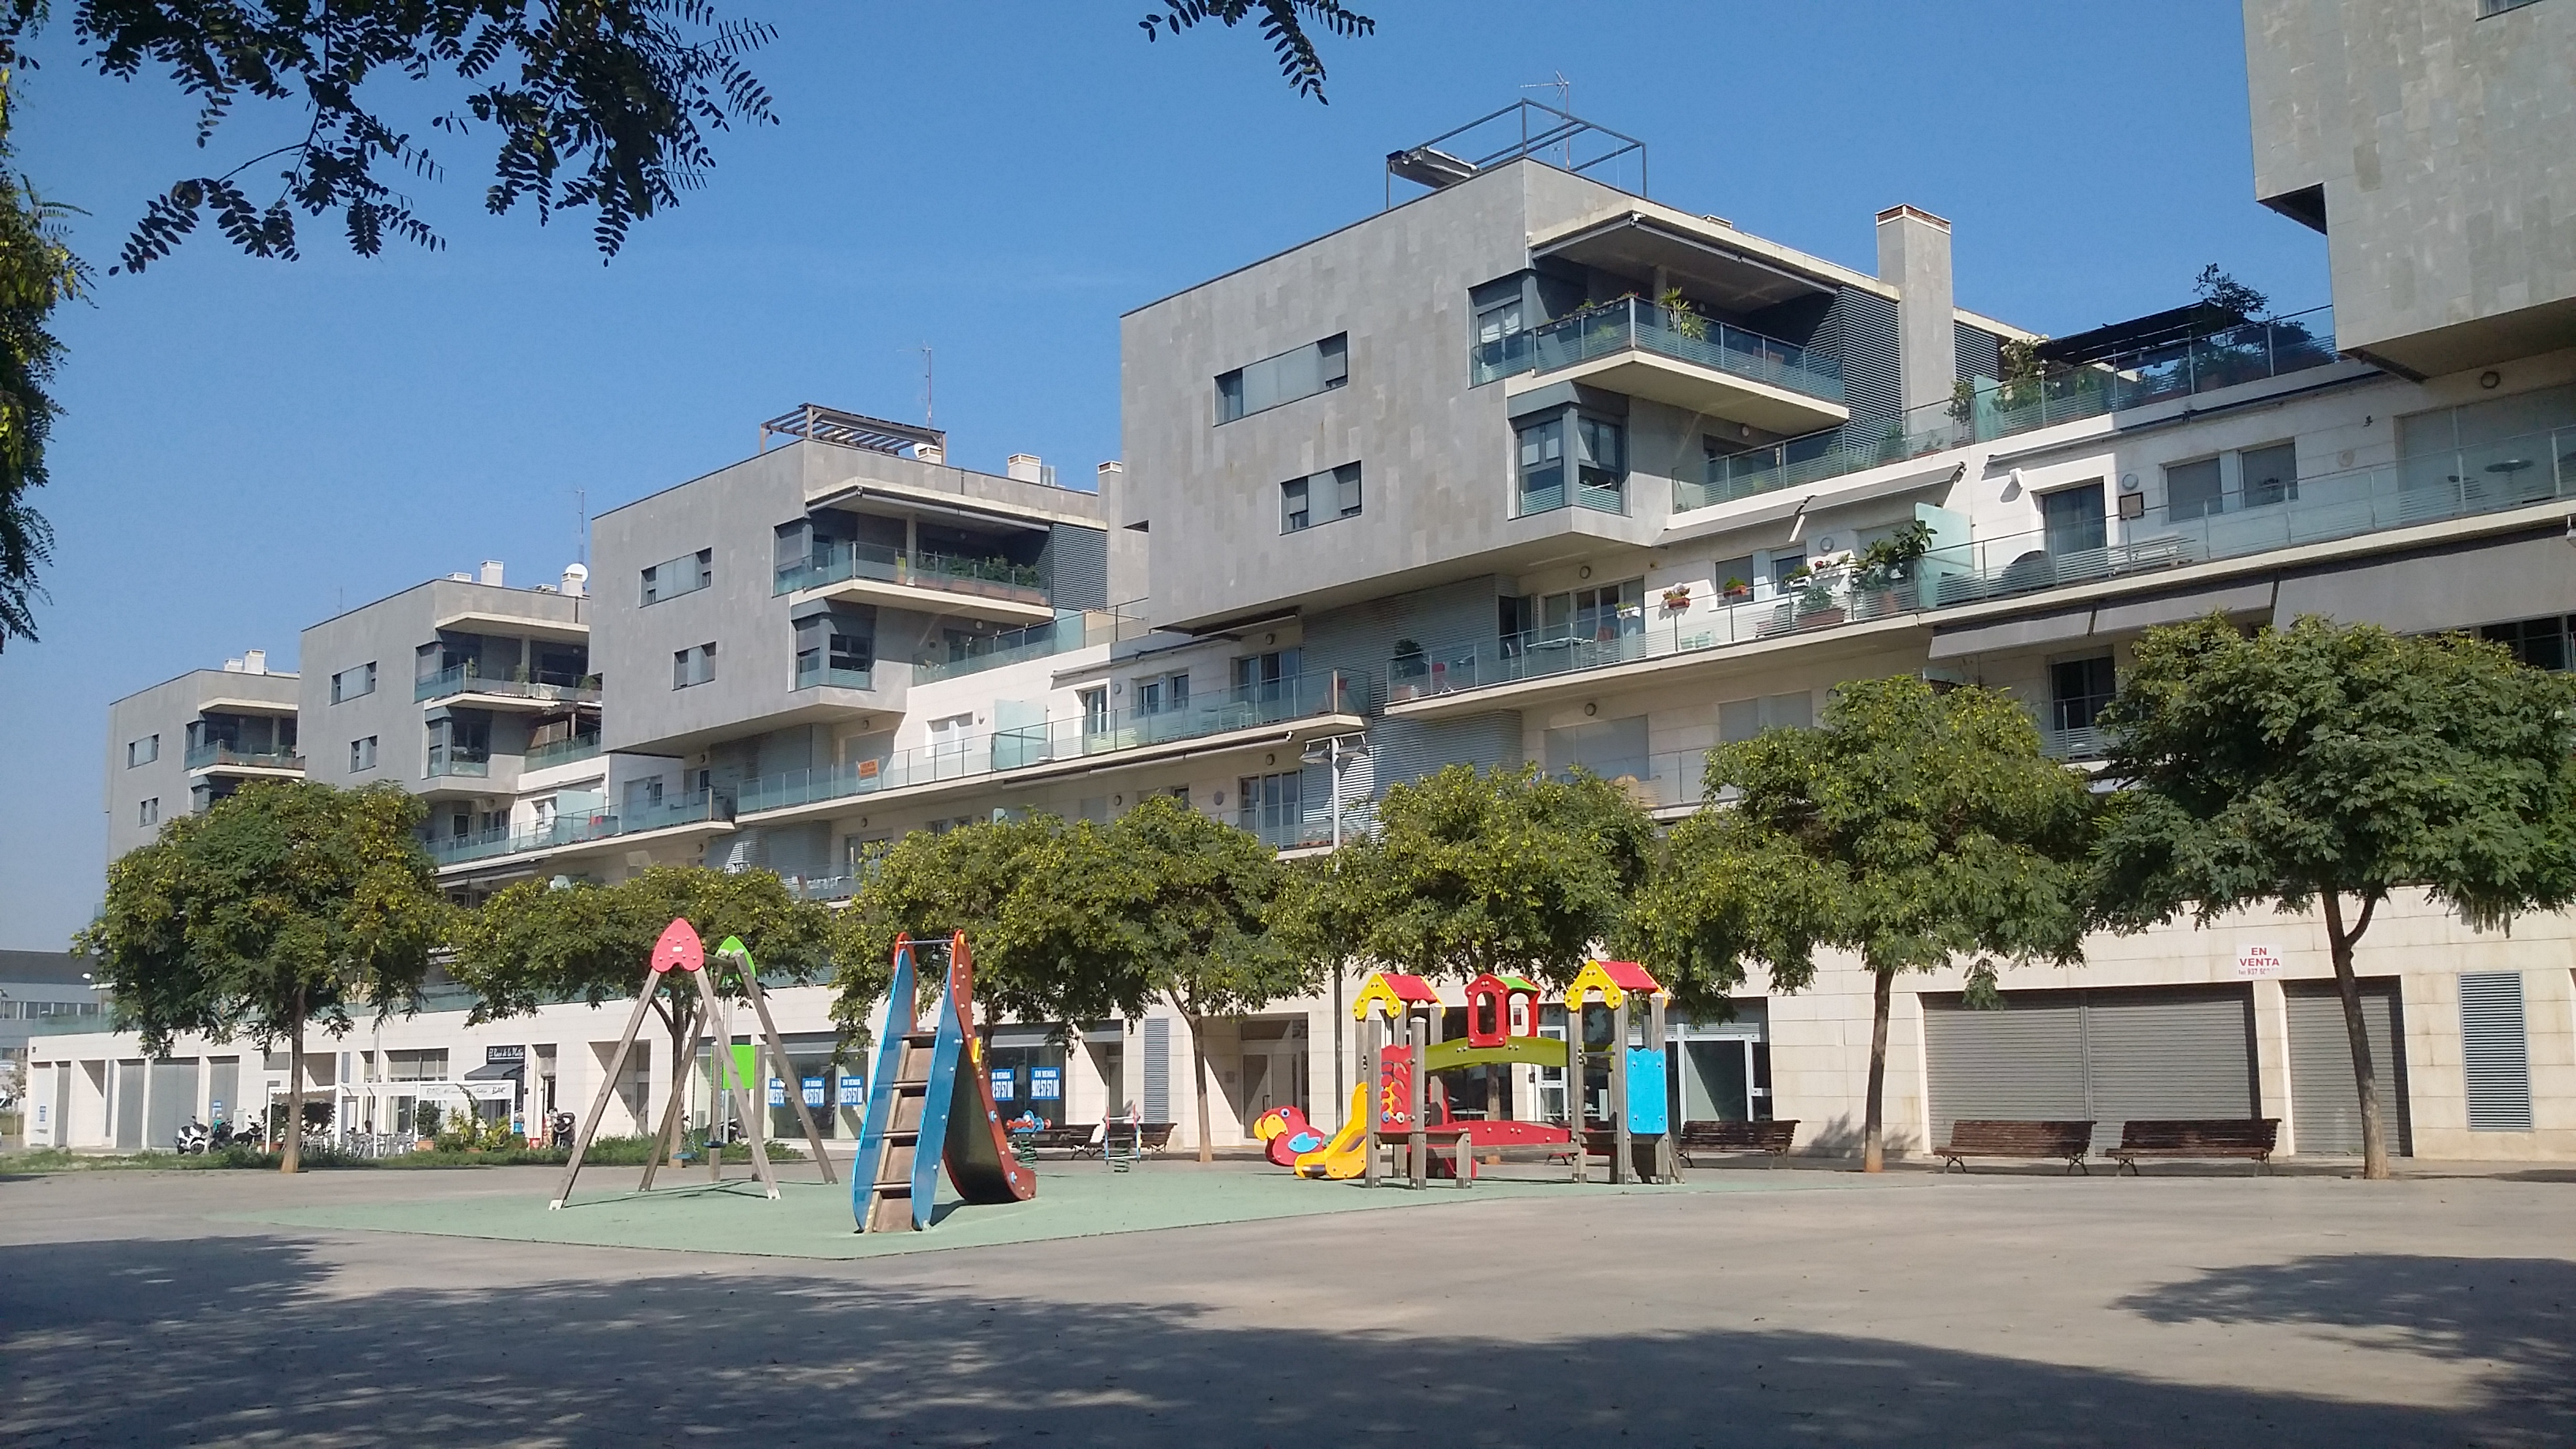 children´s playgrounds in front and behind the apartment´s building.